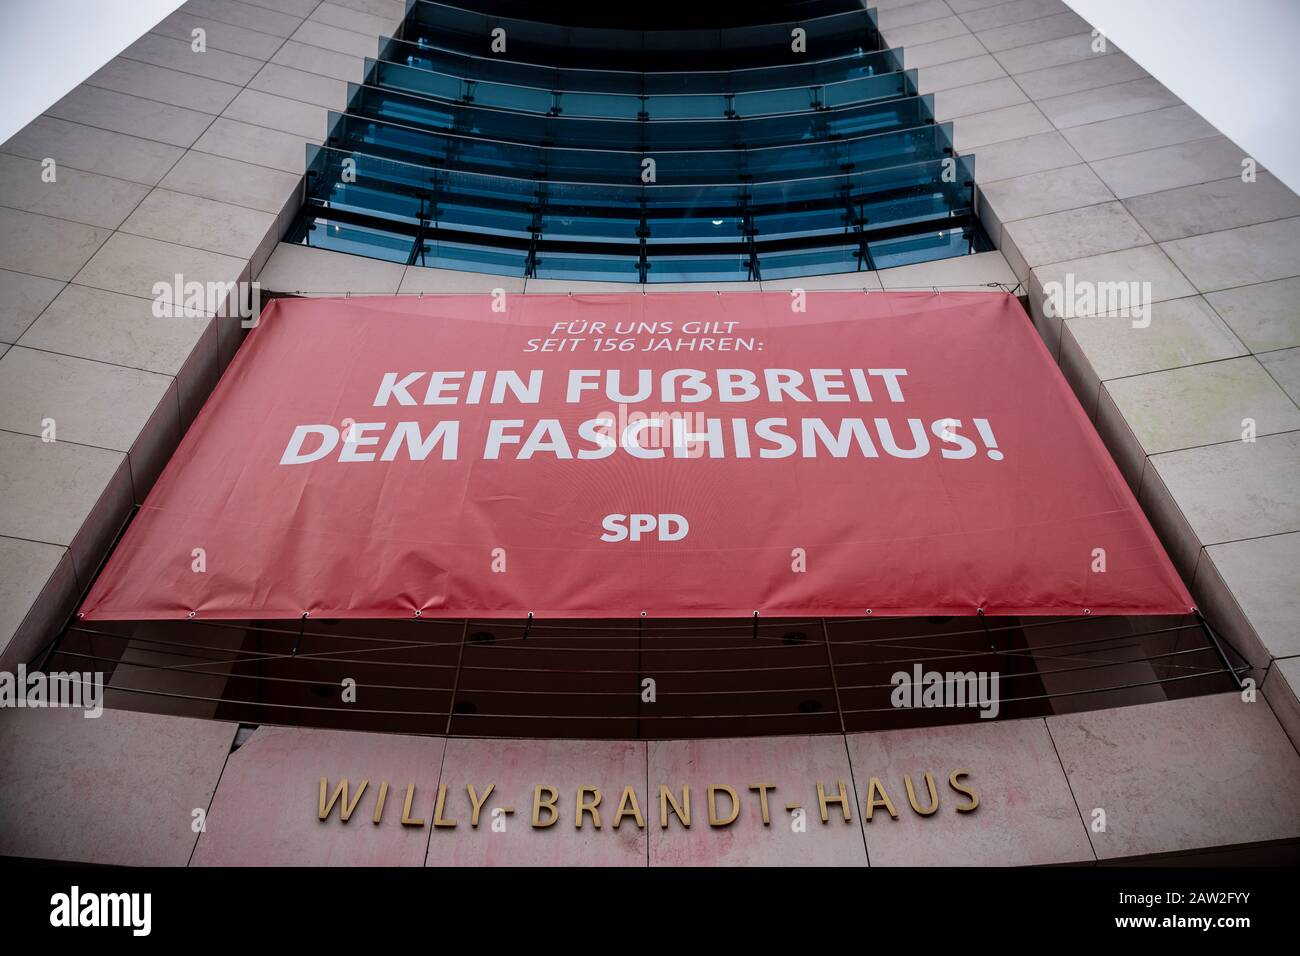 "Berlin, Germany. 06th Feb, 2020. A banner with the inscription ""Kein Fußbreit dem Faschismus!"" hangs on the facade of the SPD headquarters, the Willy Brandt House. With the banner, the SPD refers to the controversial election of the Minister President in Thuringia. Credit: Michael Kappeler/dpa/Alamy Live News Stock Photo"